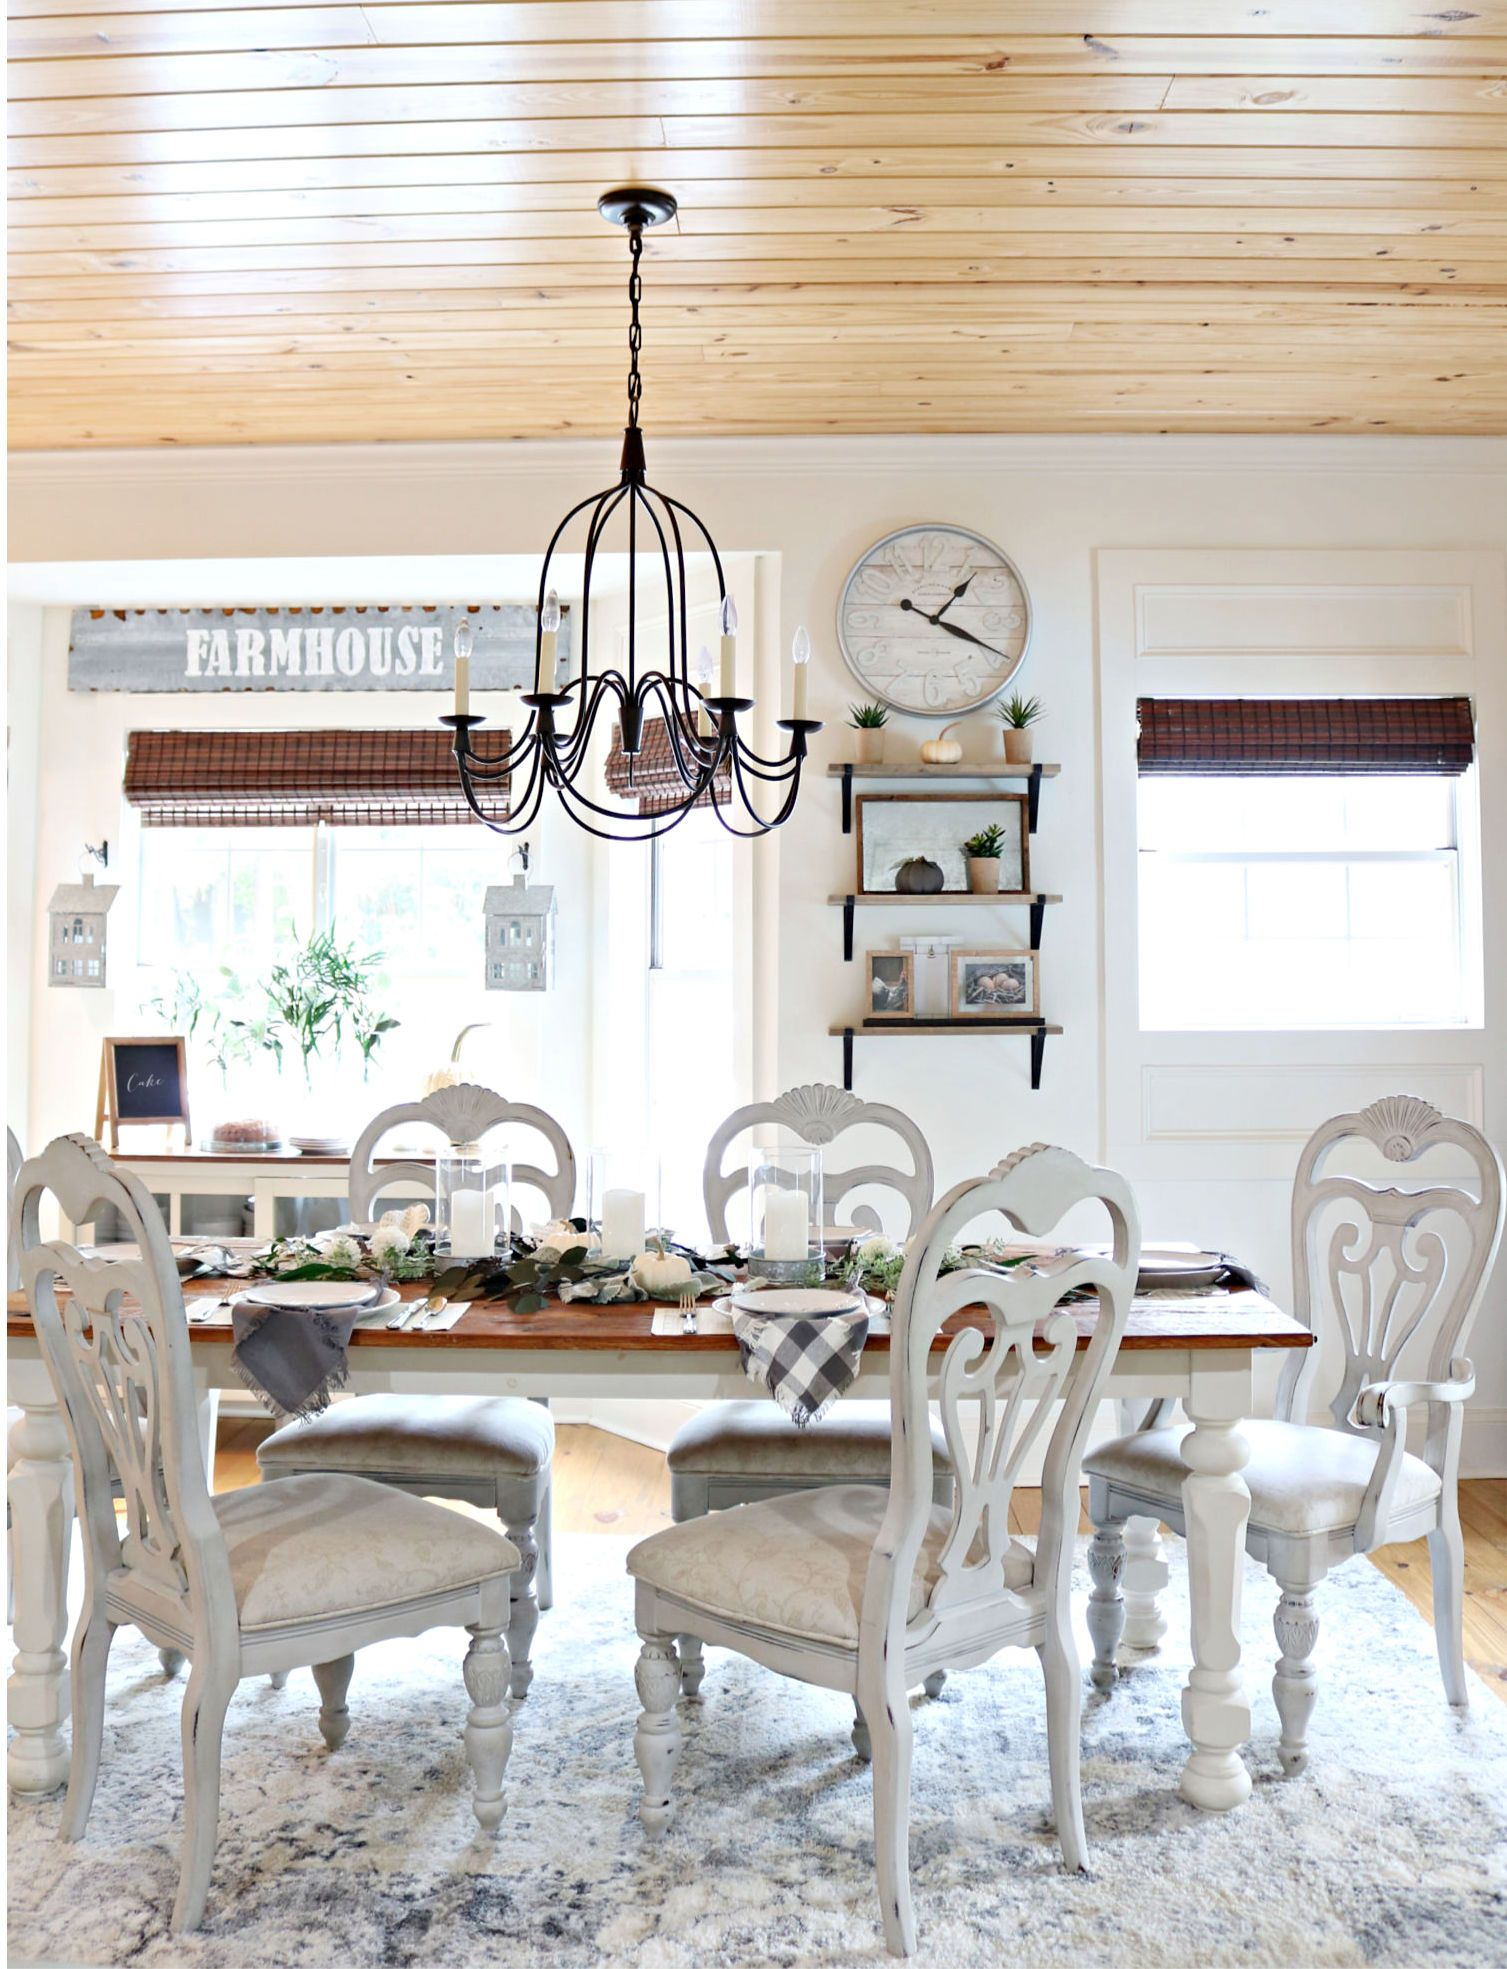 FARMHOUSE DINING ROOM cozy & affordable decor Dining